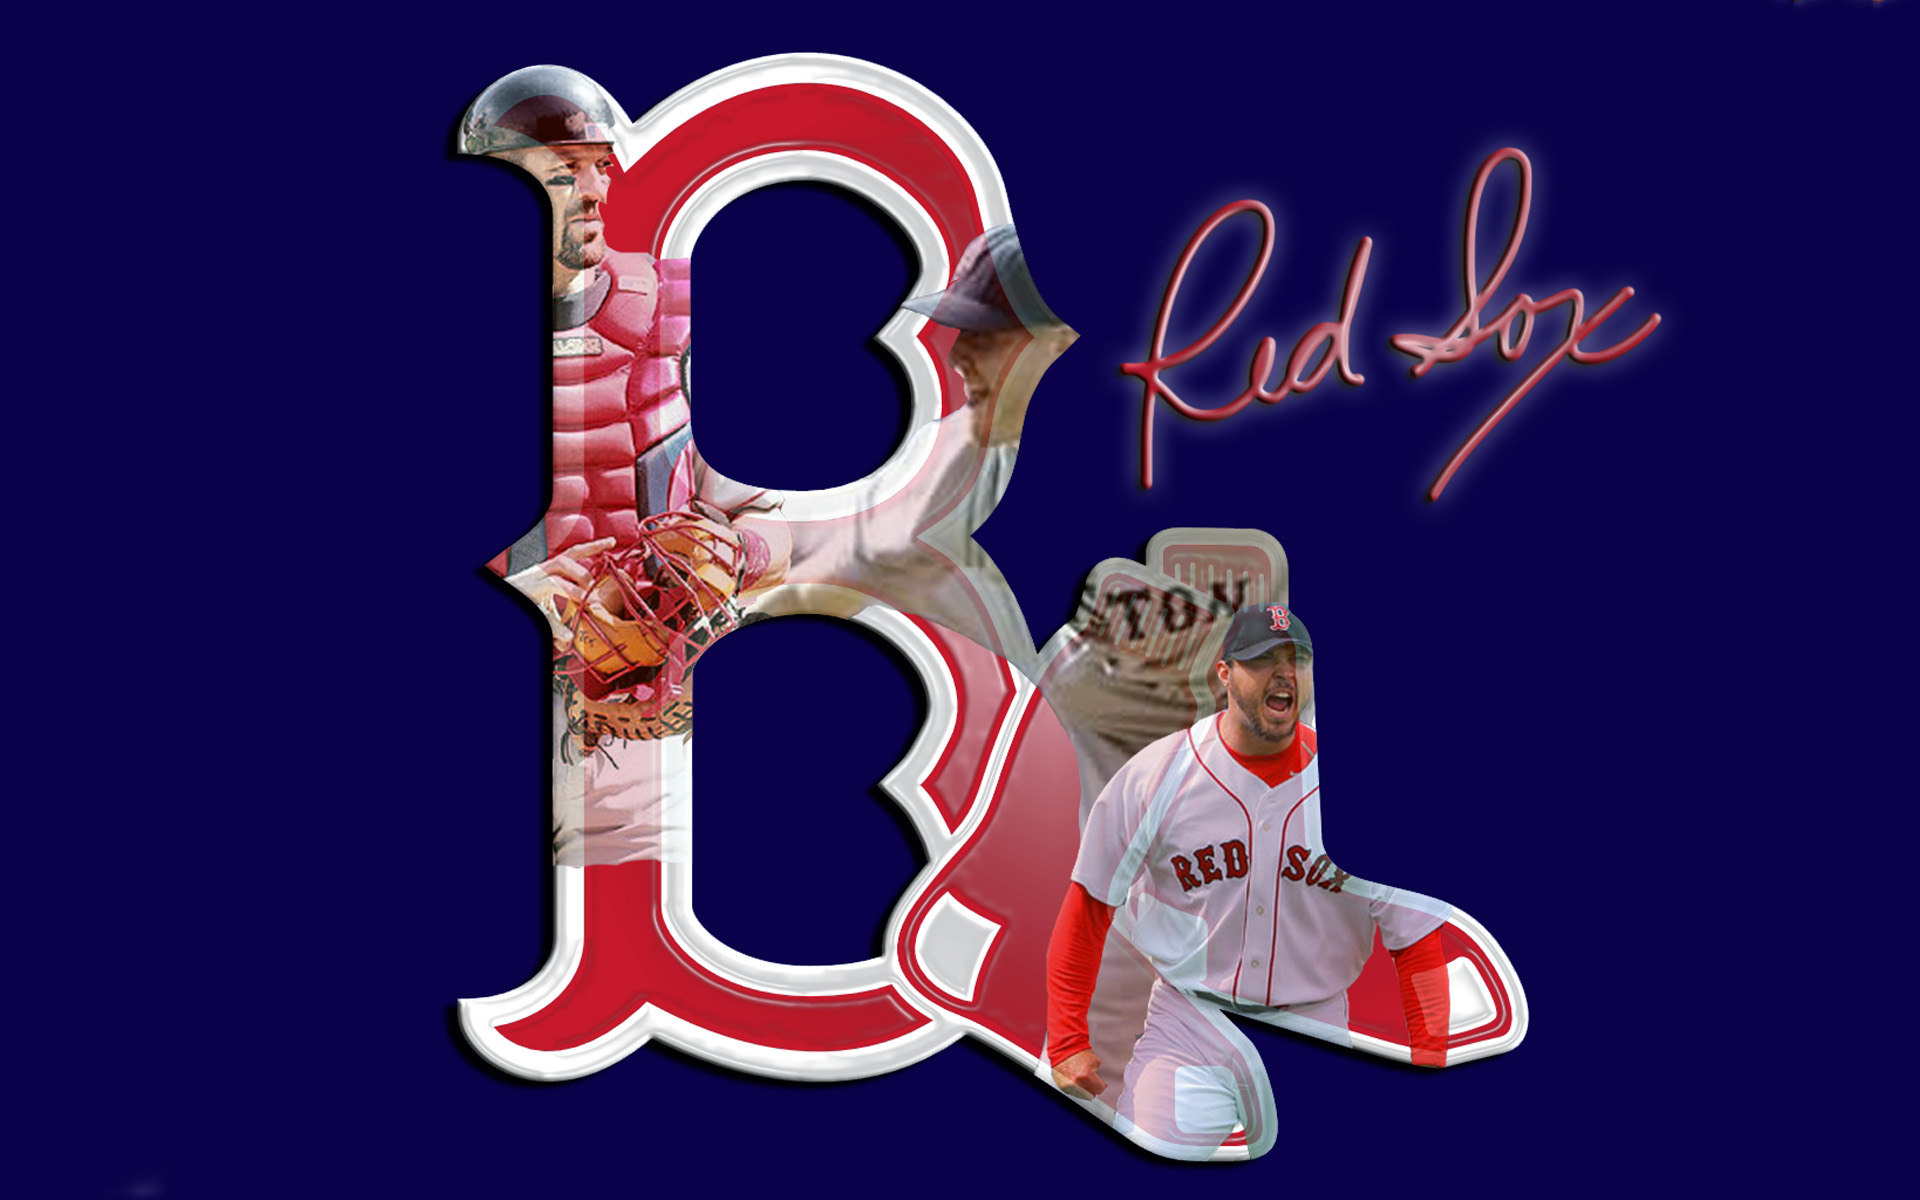 Boston Red Sox wallpapers Boston Red Sox background 1920x1200